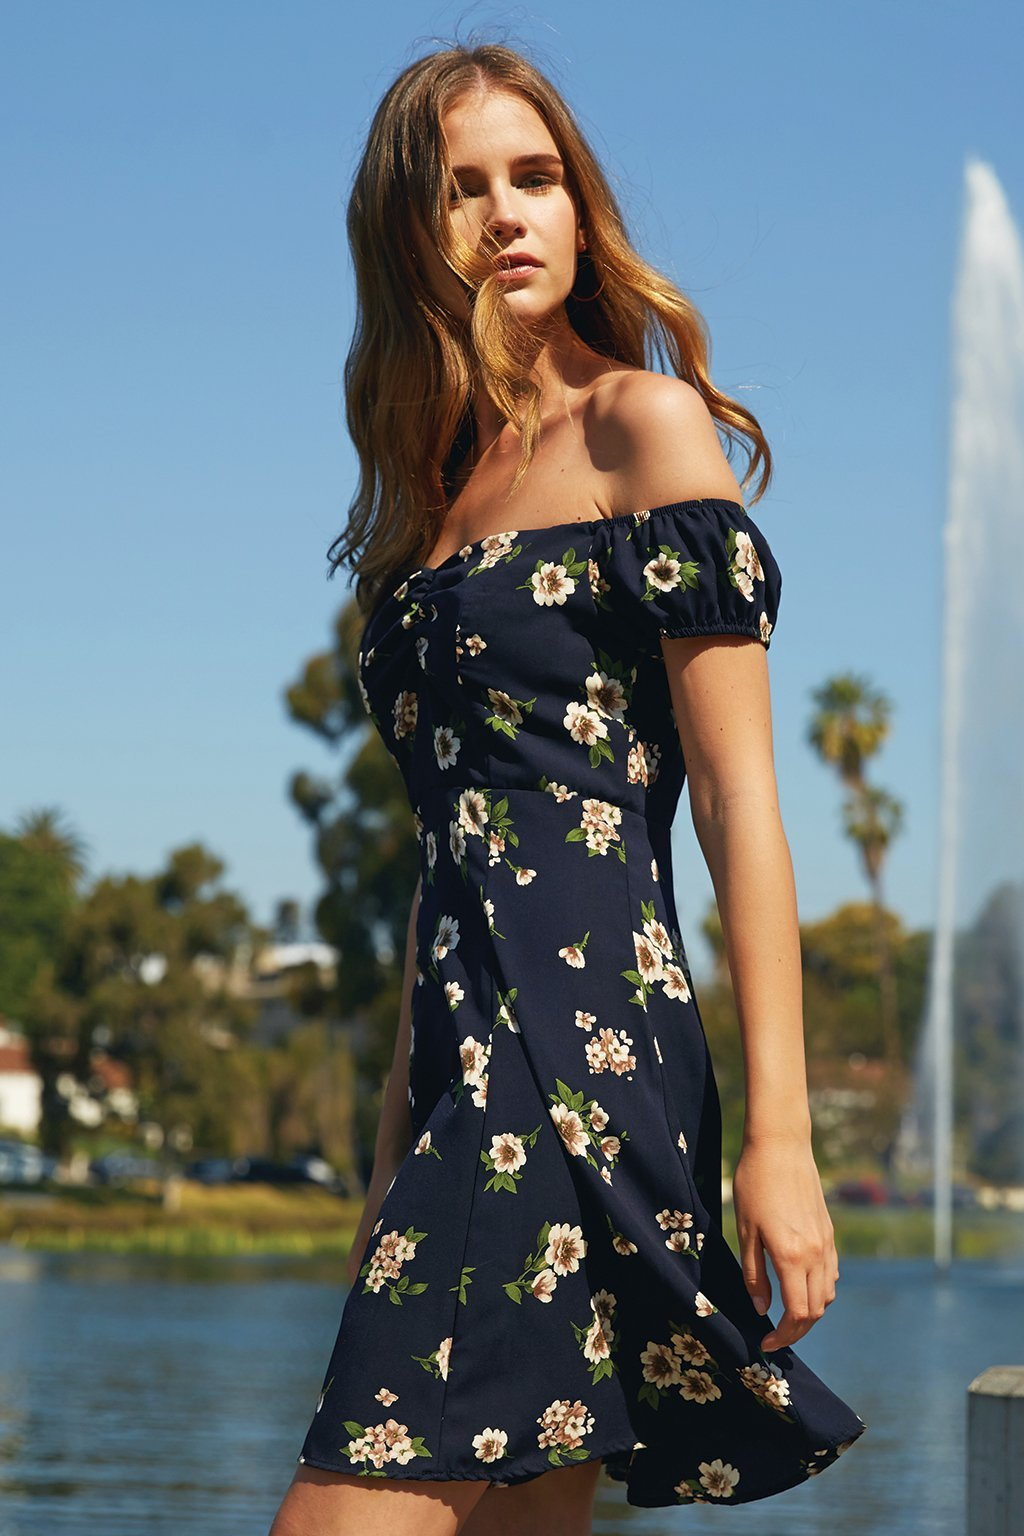 Poshsquare Dress XS / Navy Floral Lina Floral Off the Shoulder Fit and Flare Dress